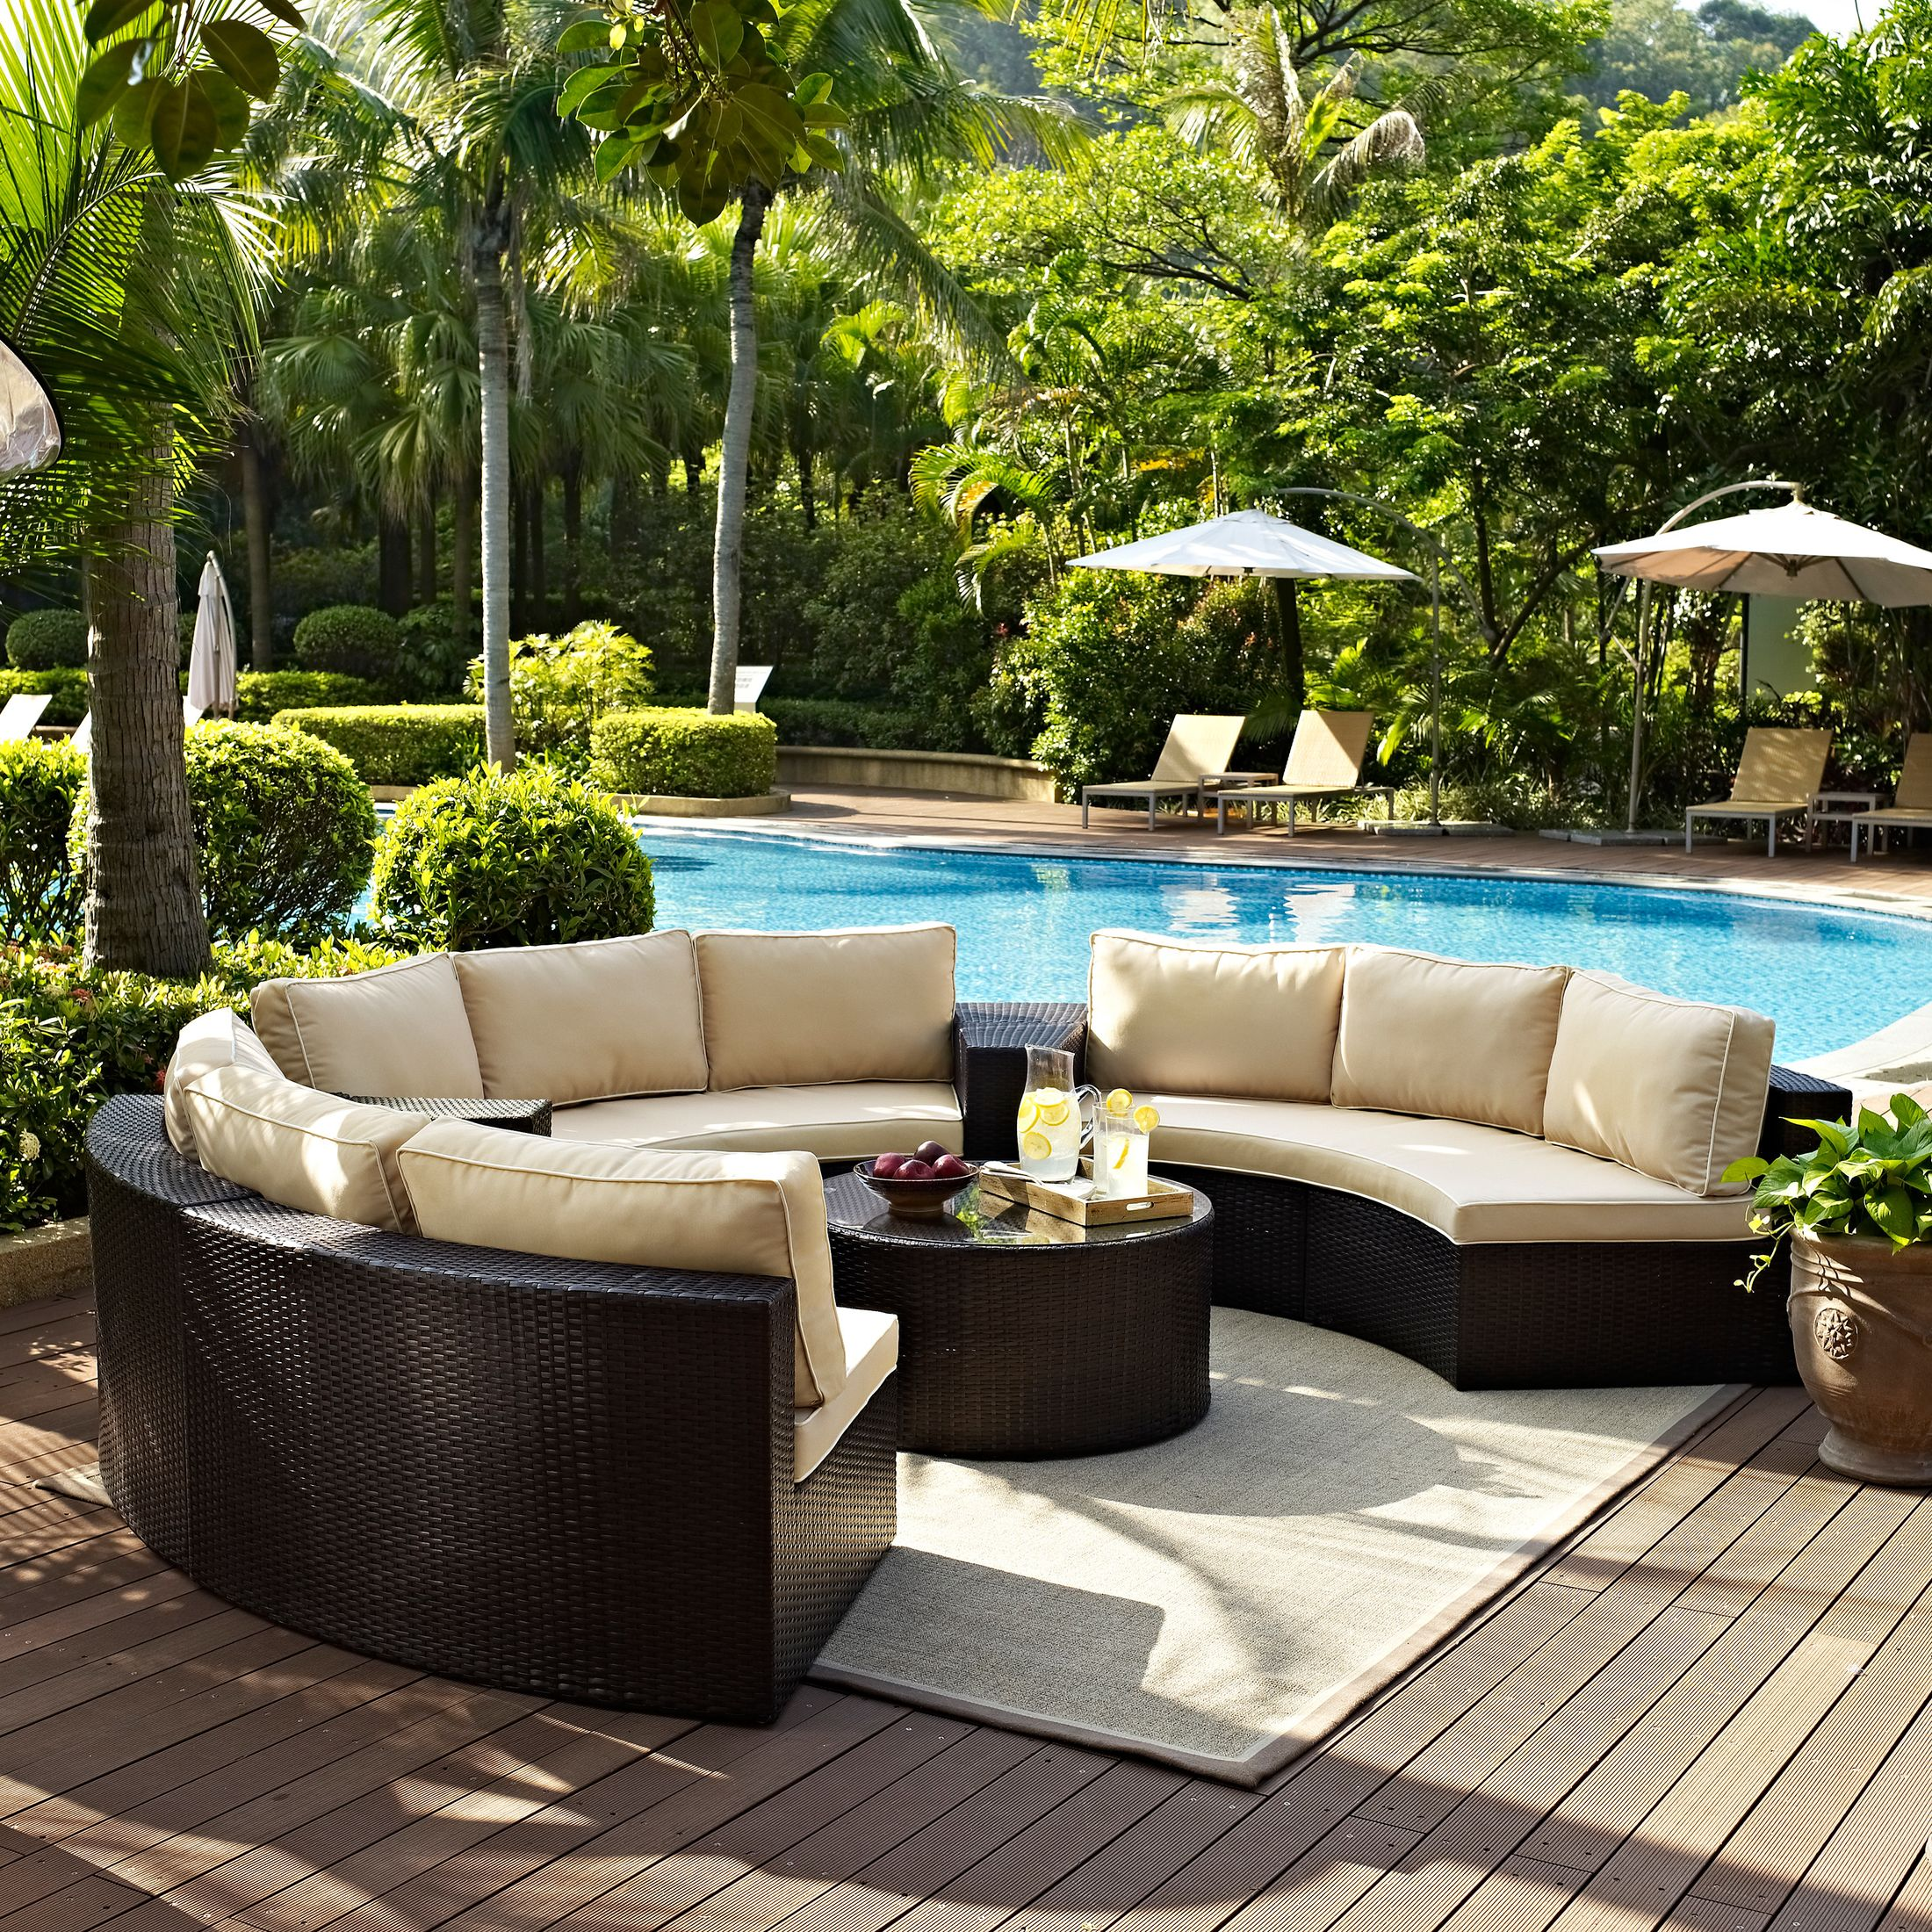 Outdoor Furniture - Huntington 5-Piece Outdoor Sectional and Coffee Table Set